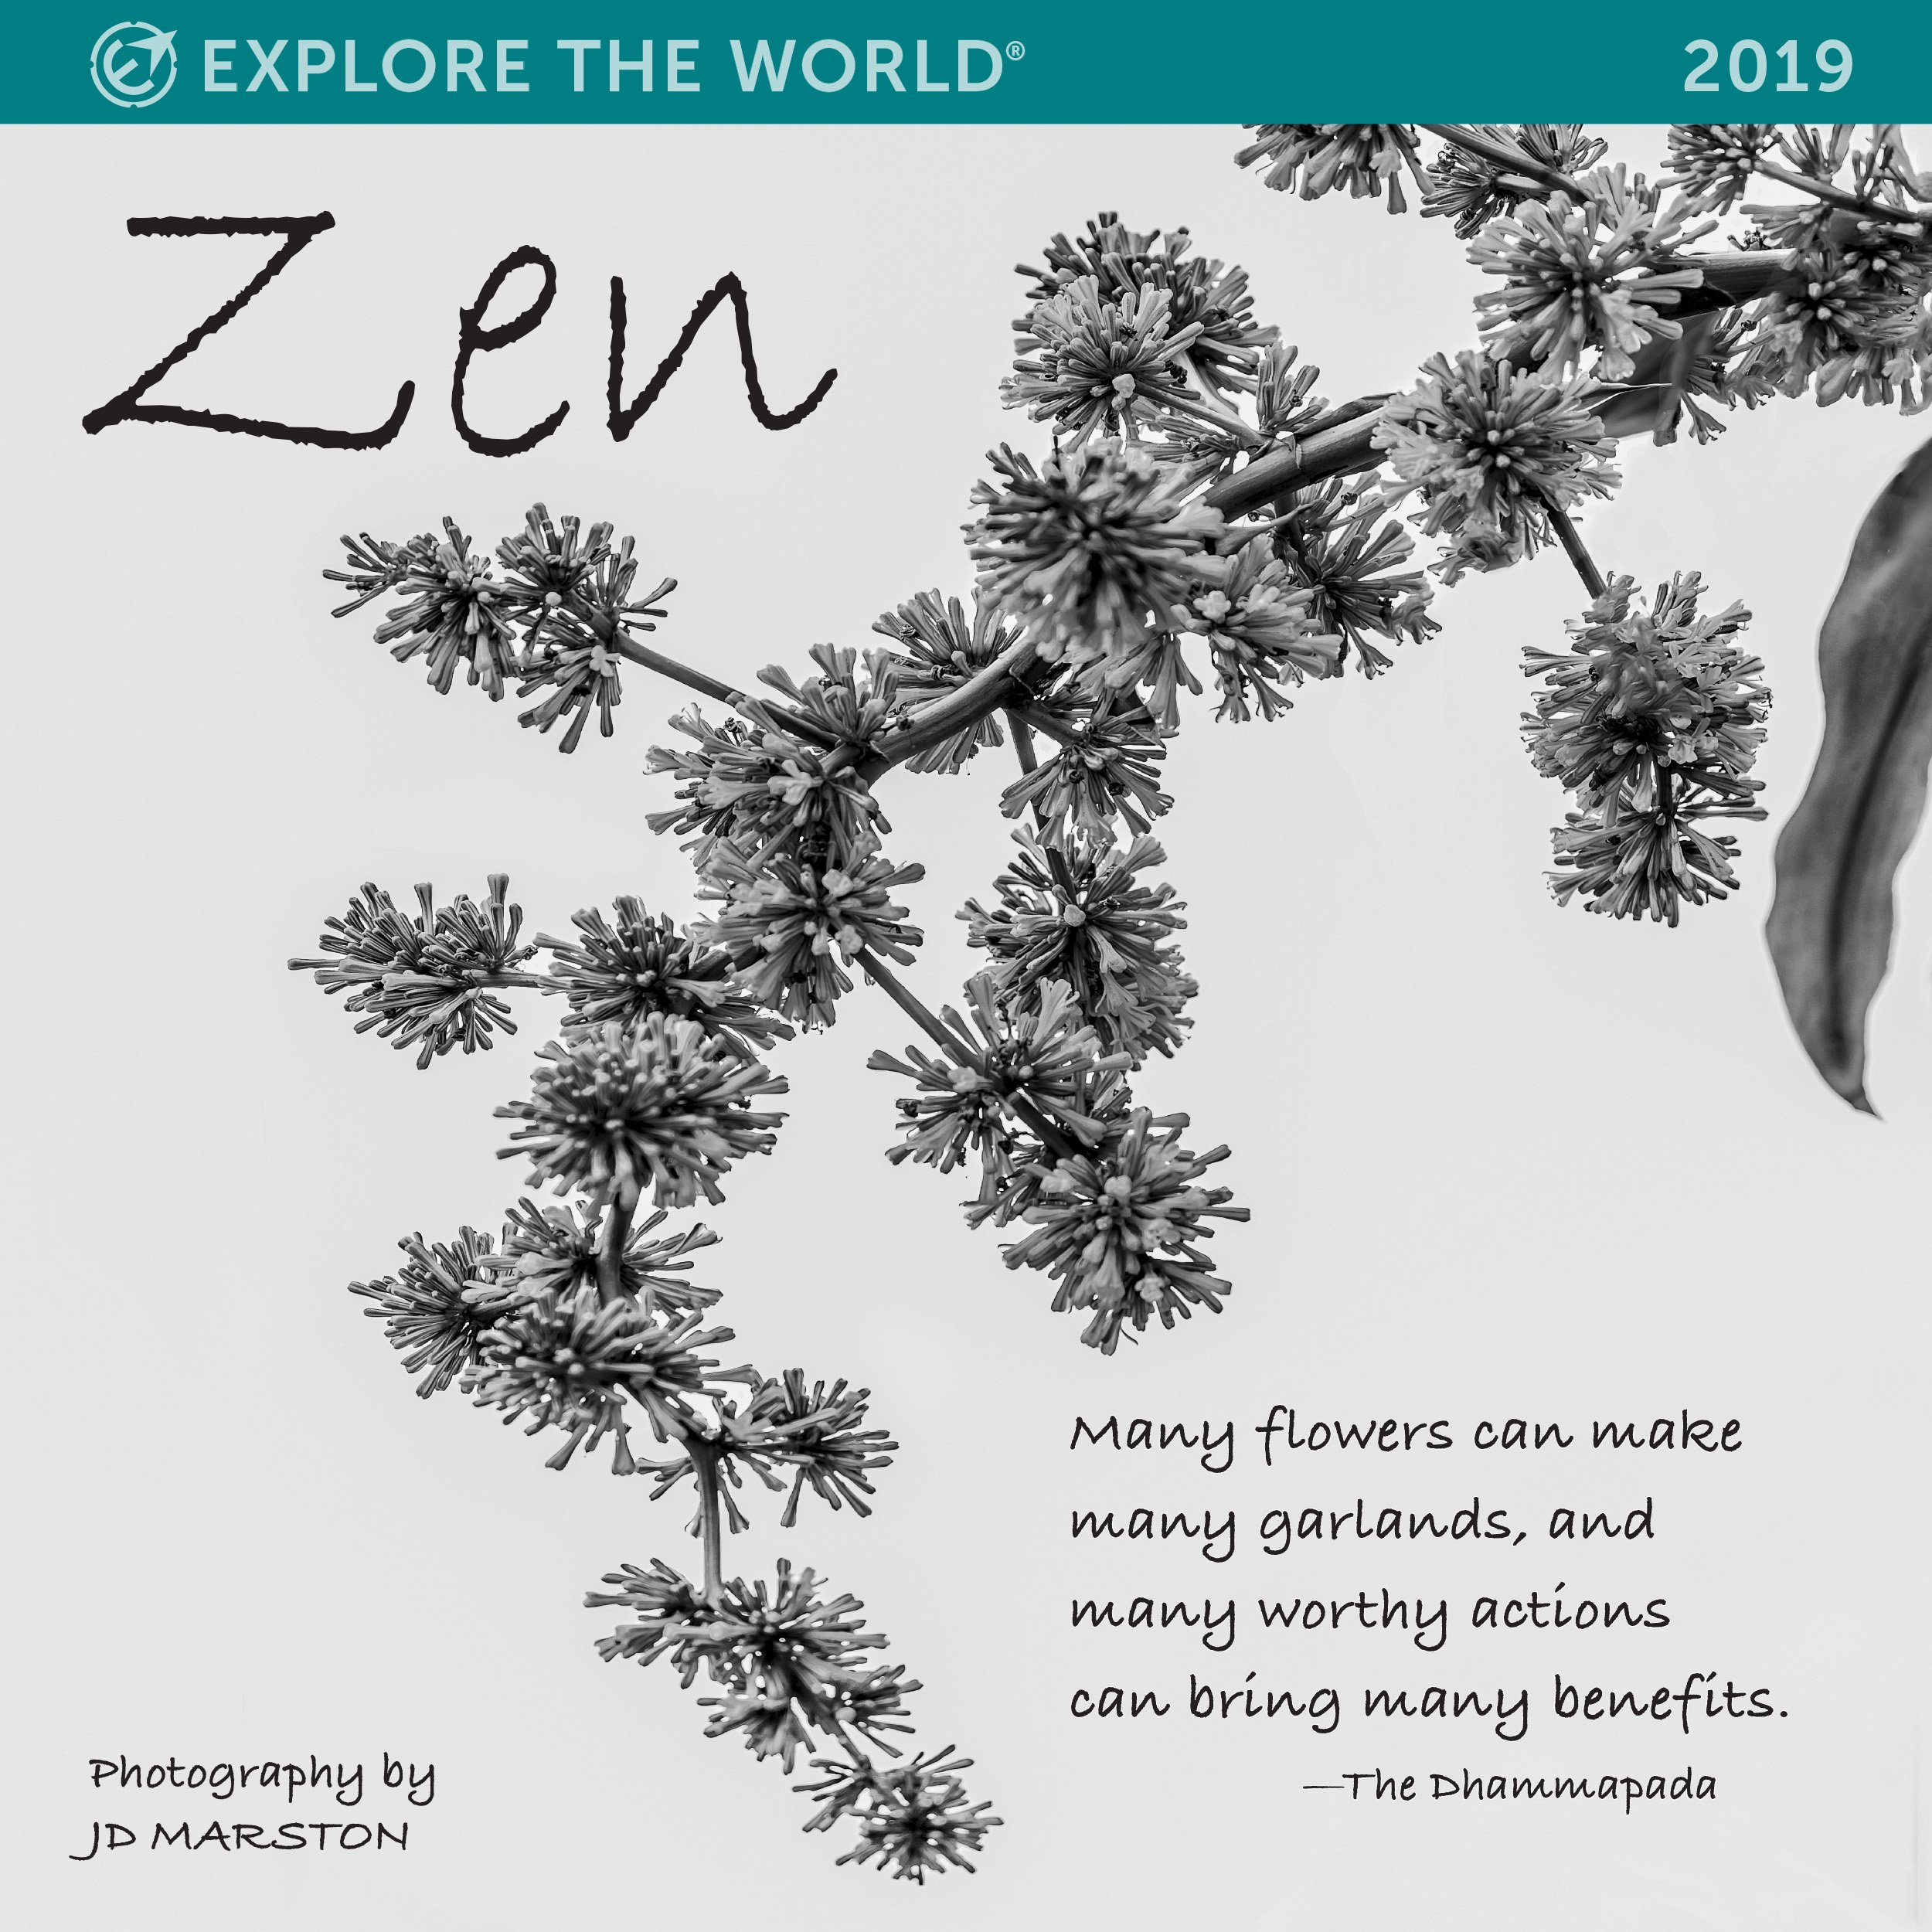 December 2014 January 2019 Calendar Zen Wall Calendar 2019 Monthly January December 12